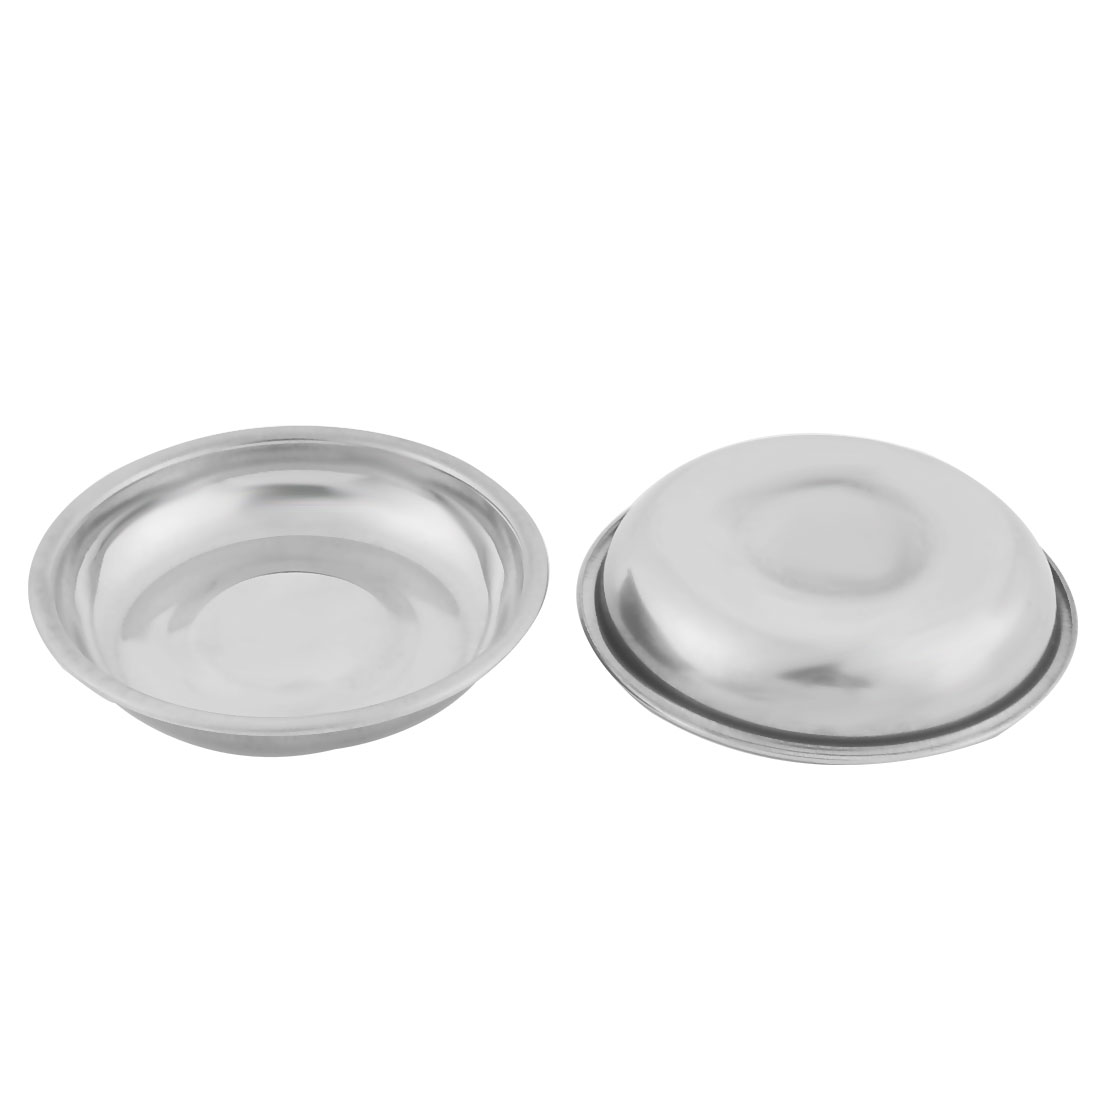 Home Metal Round Shaped Soy Sauce Spice Dipping Serving Dish Silver Tone 2 Pcs